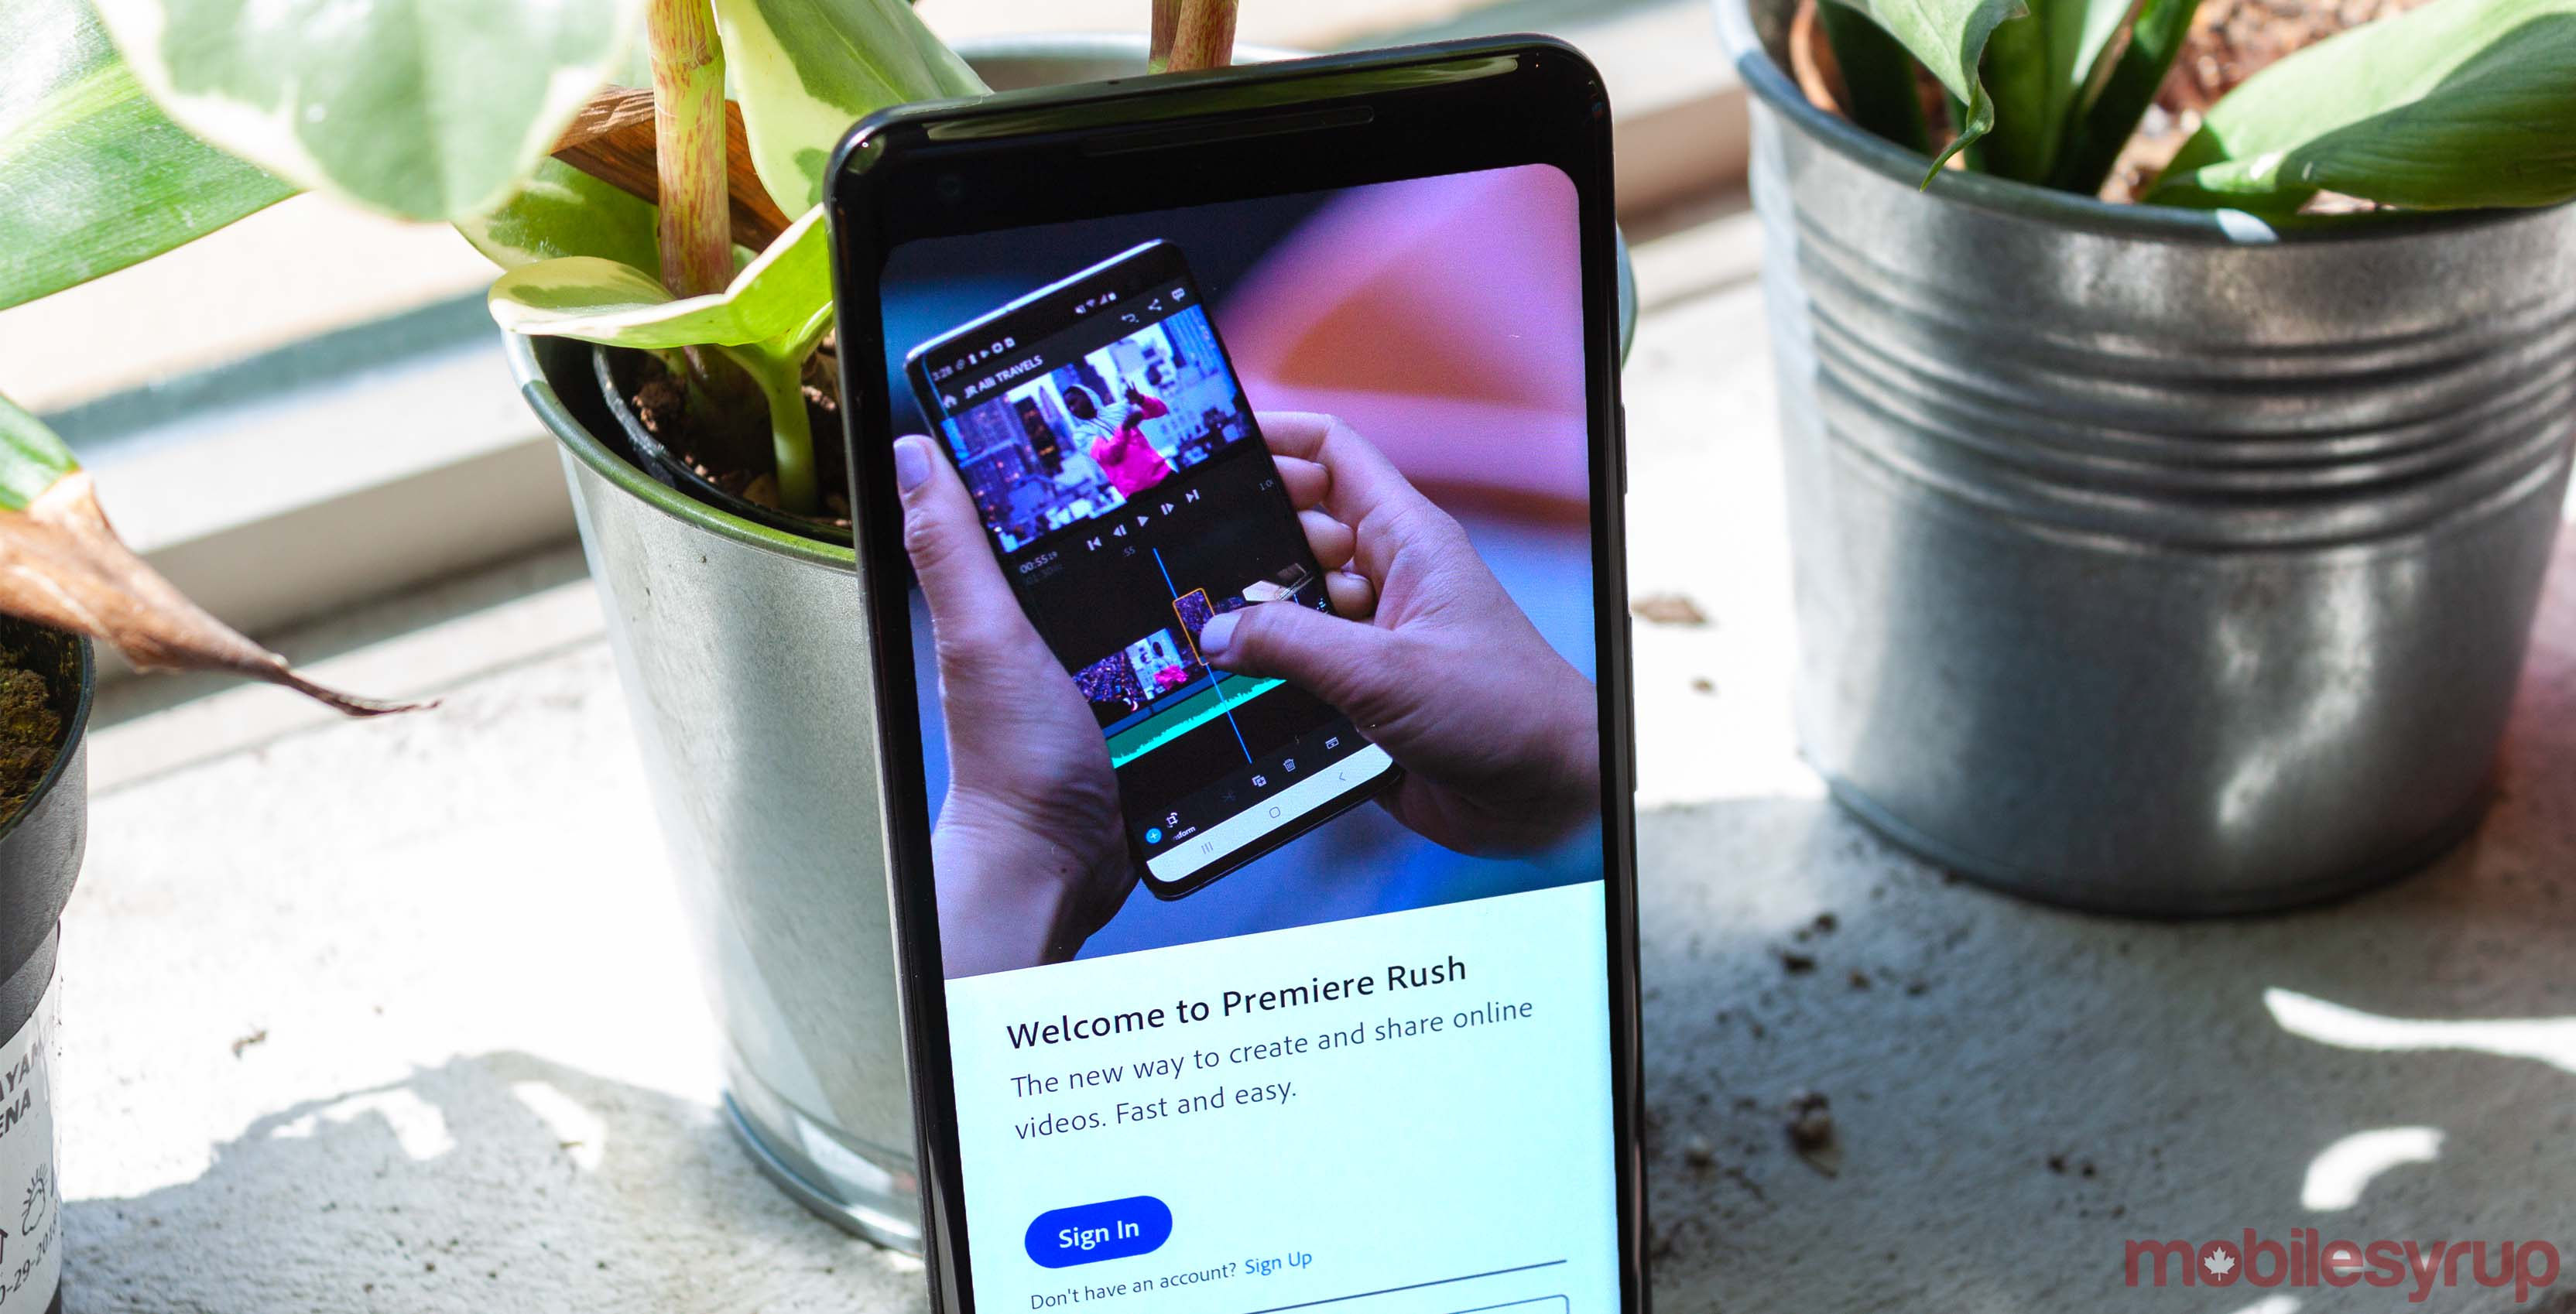 Adobe's simplified editing software Premiere Rush now available on Android